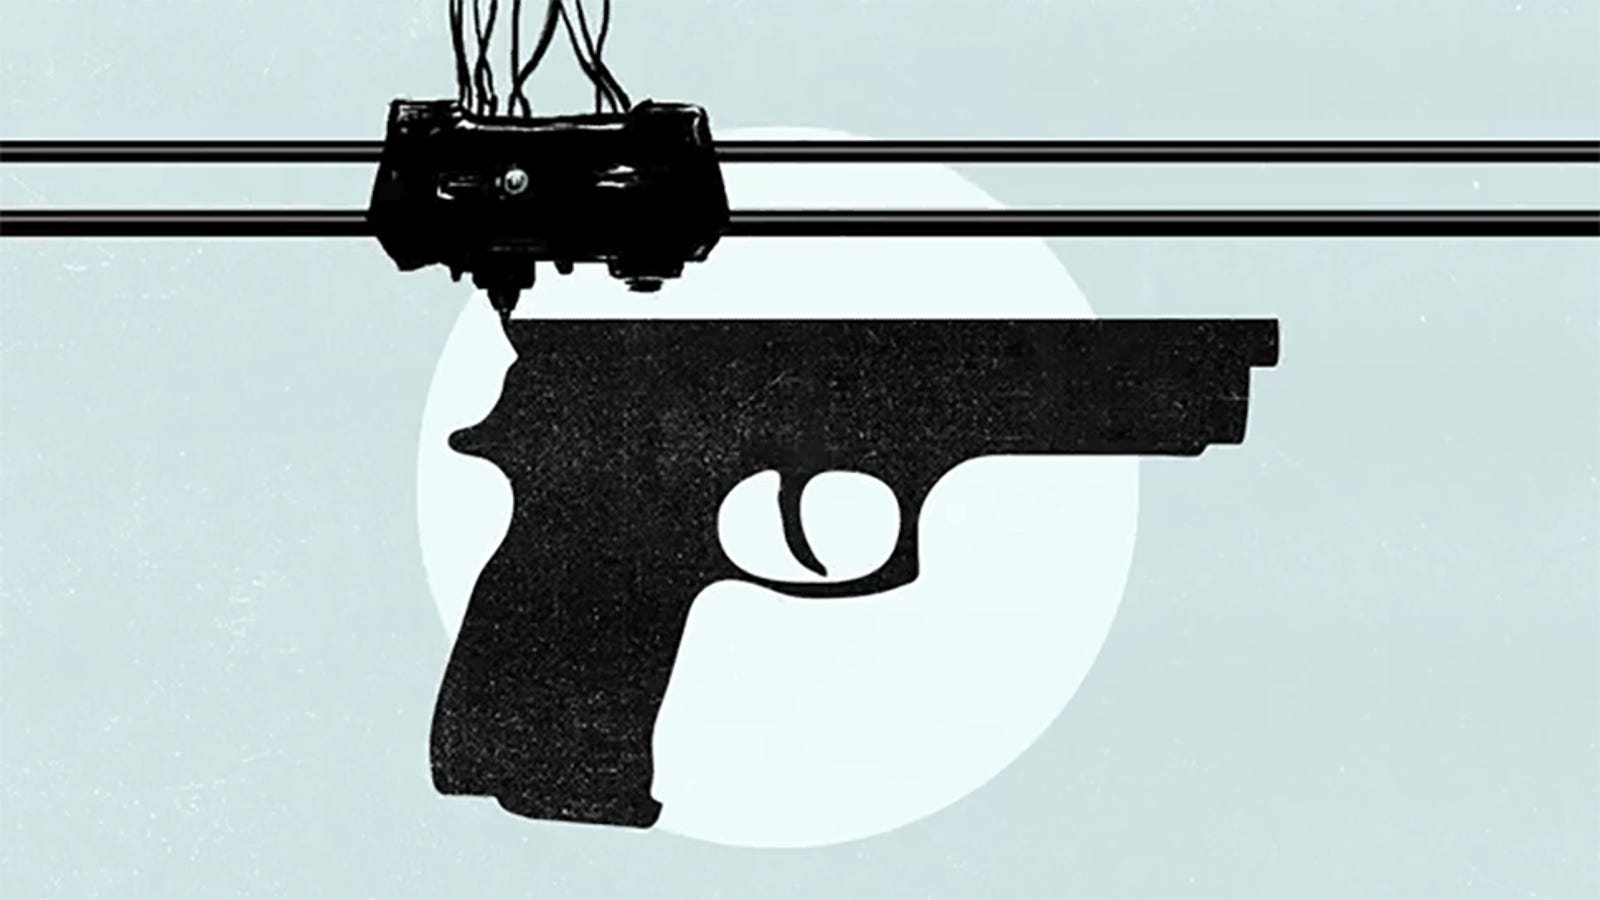 The Battle Over 3D-Printed Guns Is Getting Serious